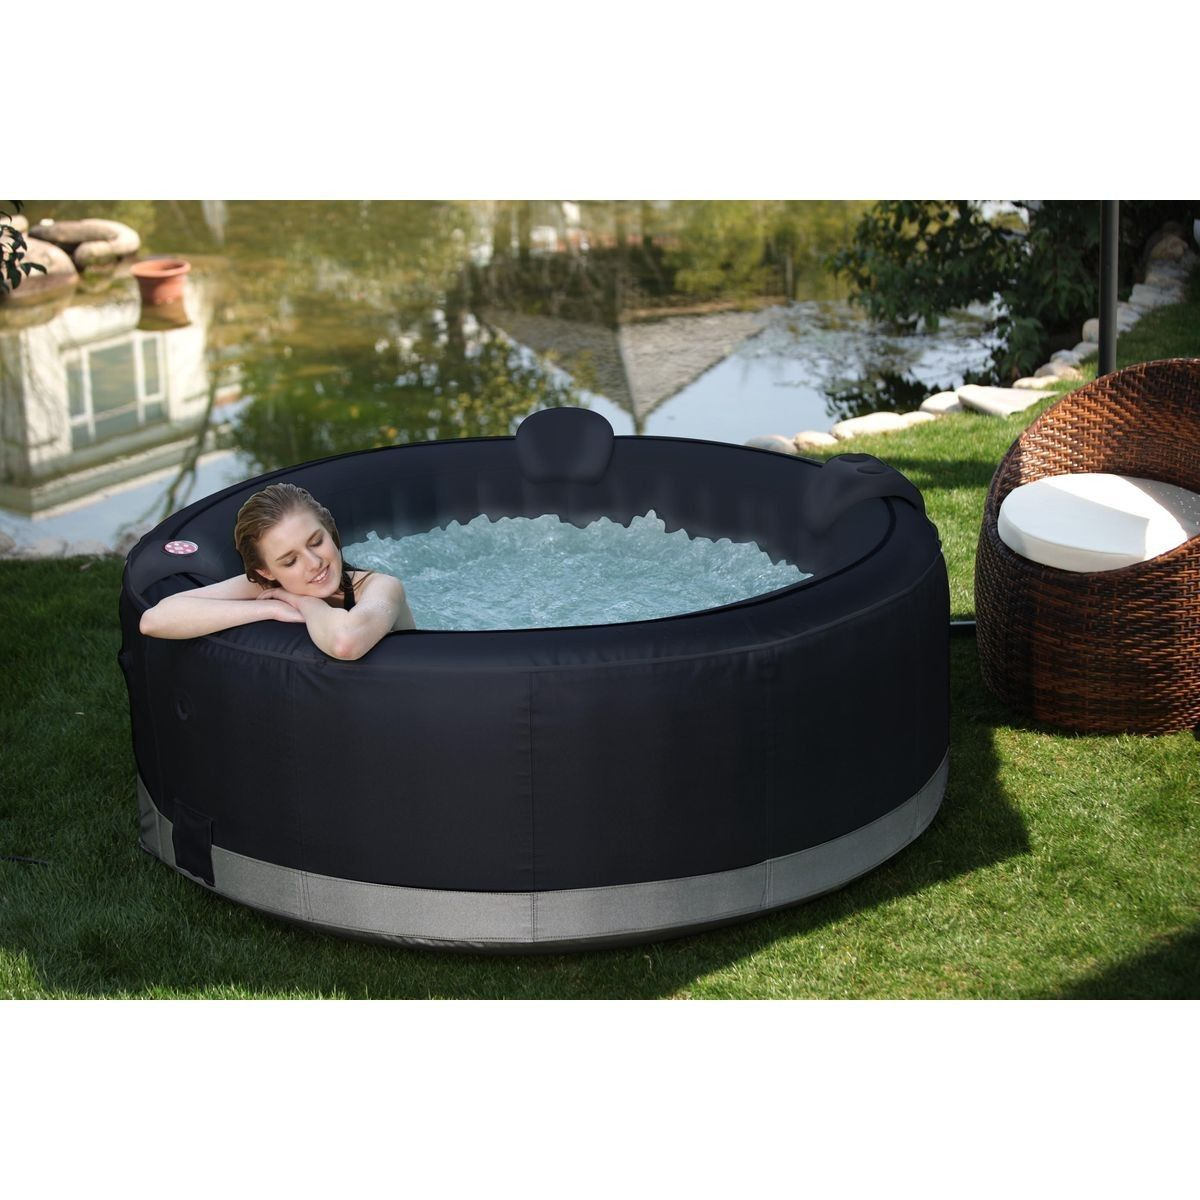 Spa Gonflable Luxe Pour 6 Personnes Dimensions 2 08m X 0 65mh